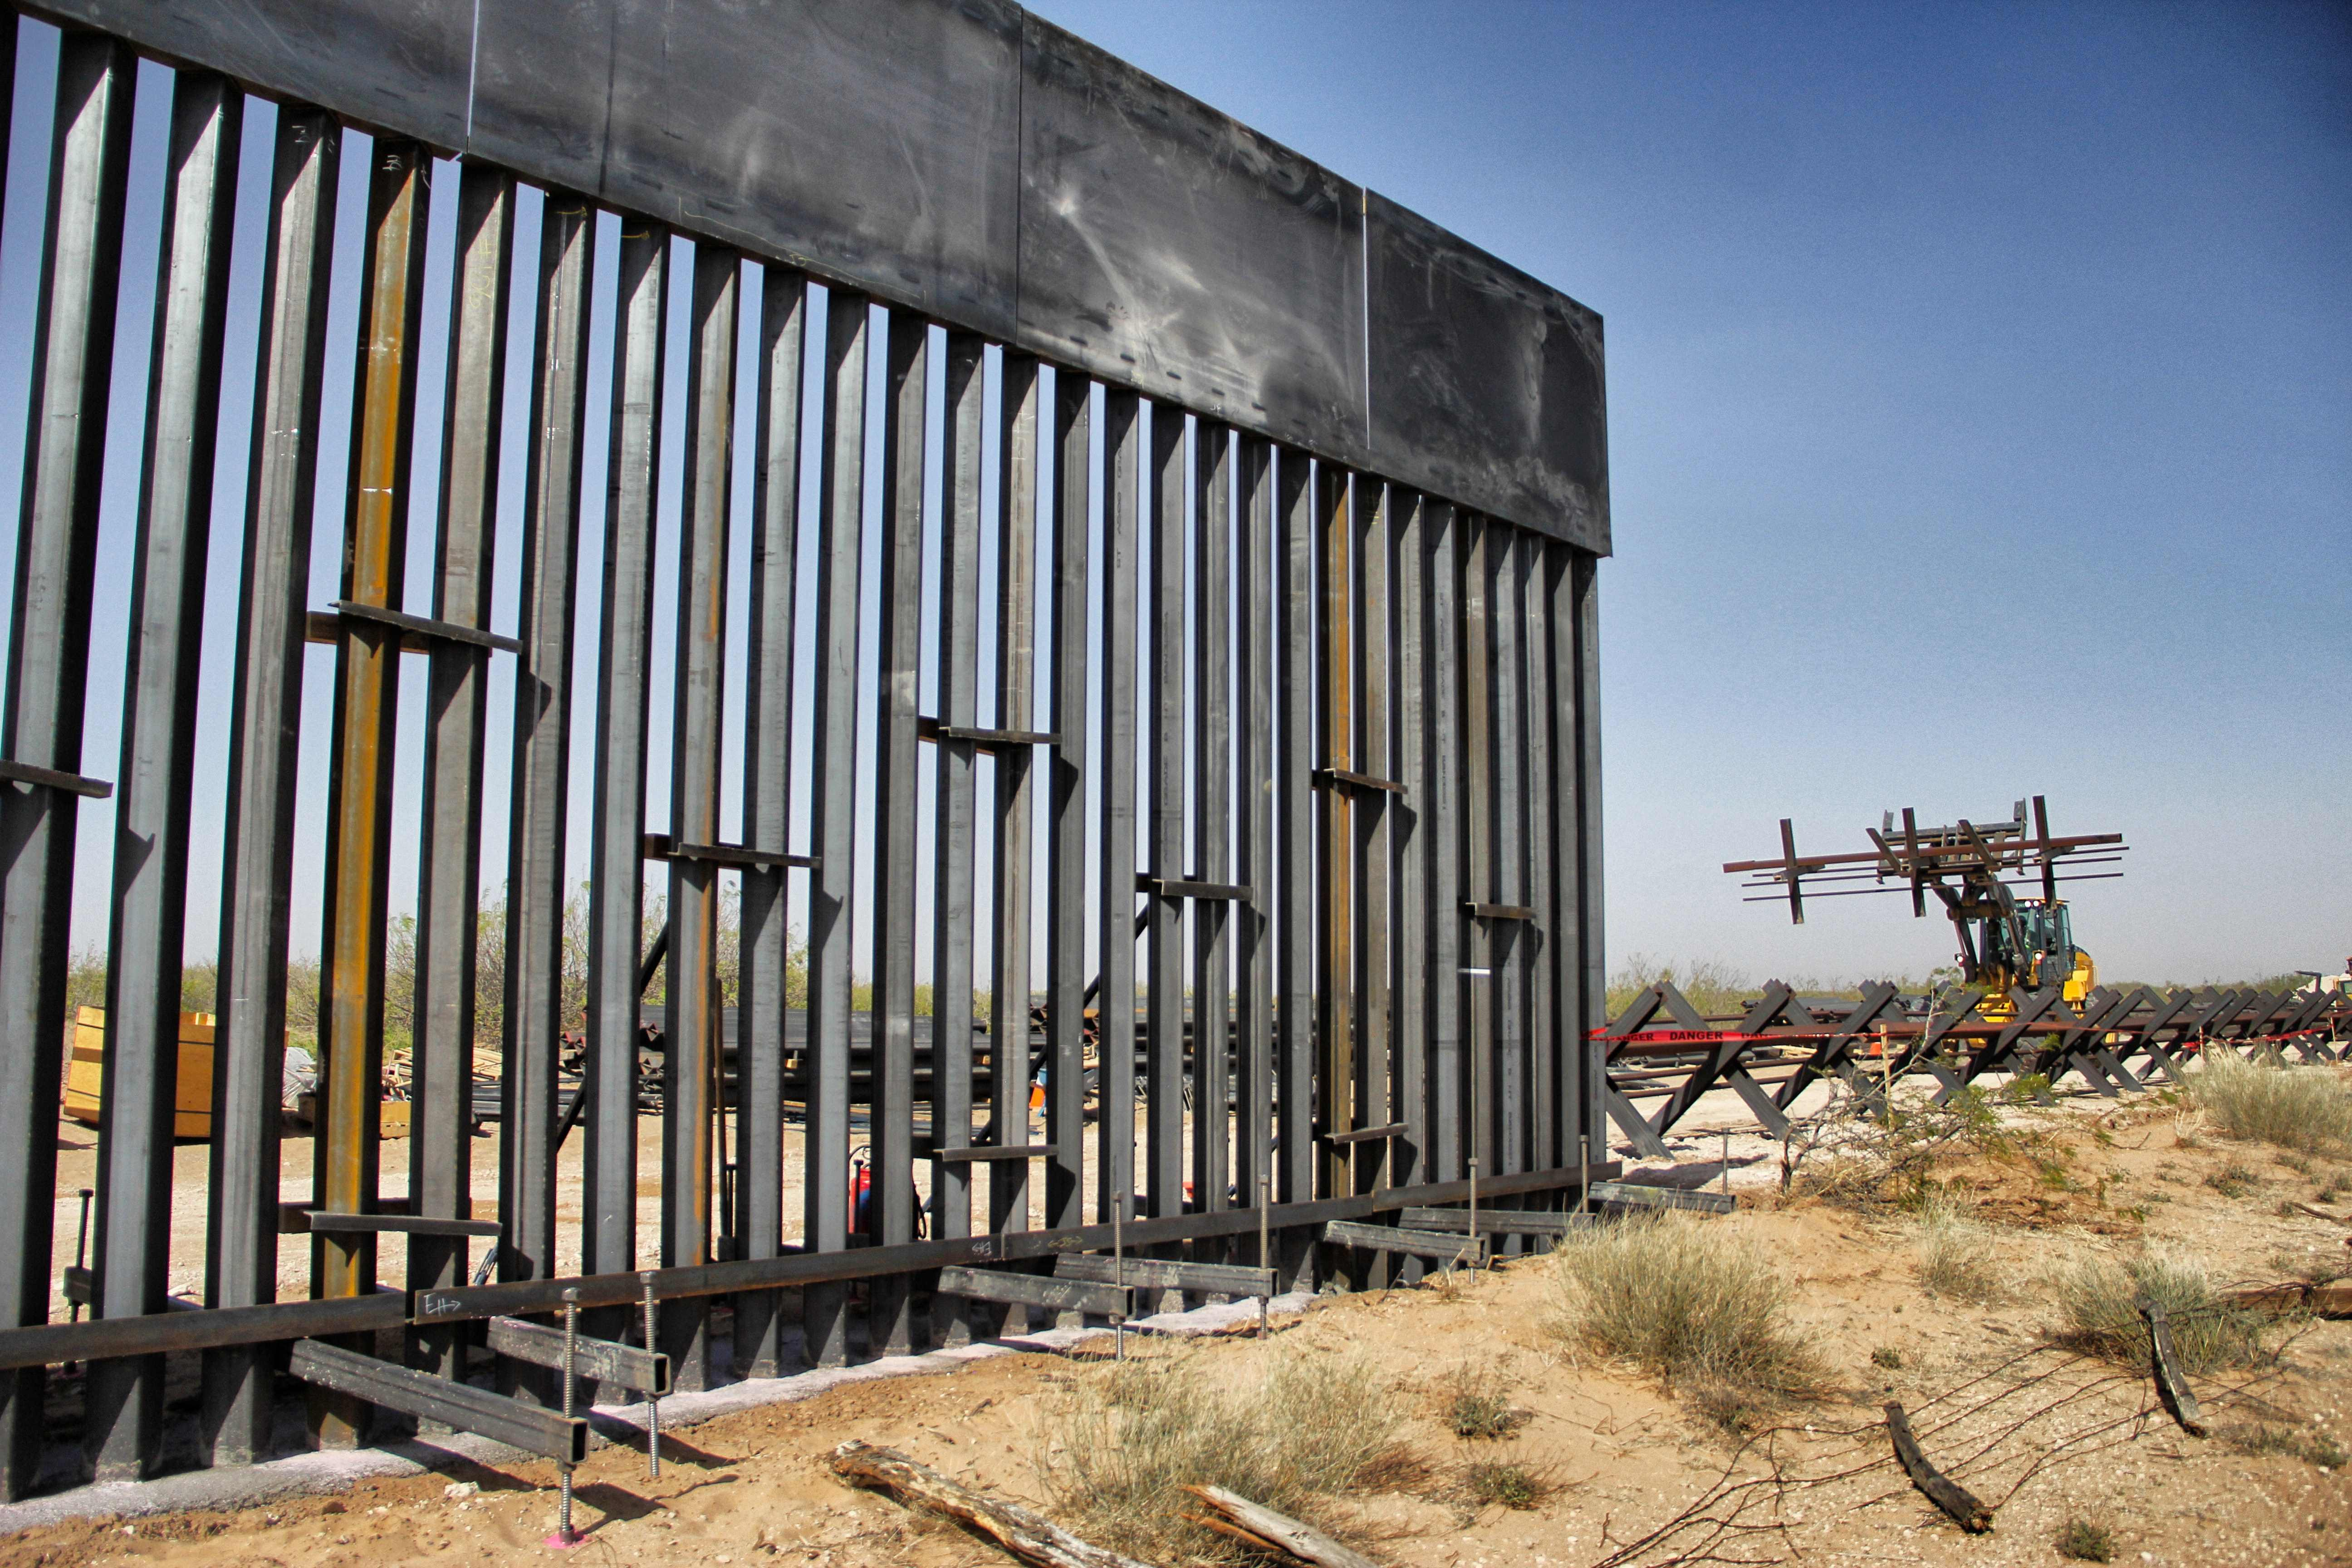 US workers are photographed during construction of 32km of the border wall by order of US President Donald Trump on the border between Ciudad Juarez, Chihuahua state, Mexico and Santa Teresa, New Mexico state, US, on April 17, 2018. (HERIKA MARTINEZ/AFP/Getty Images)